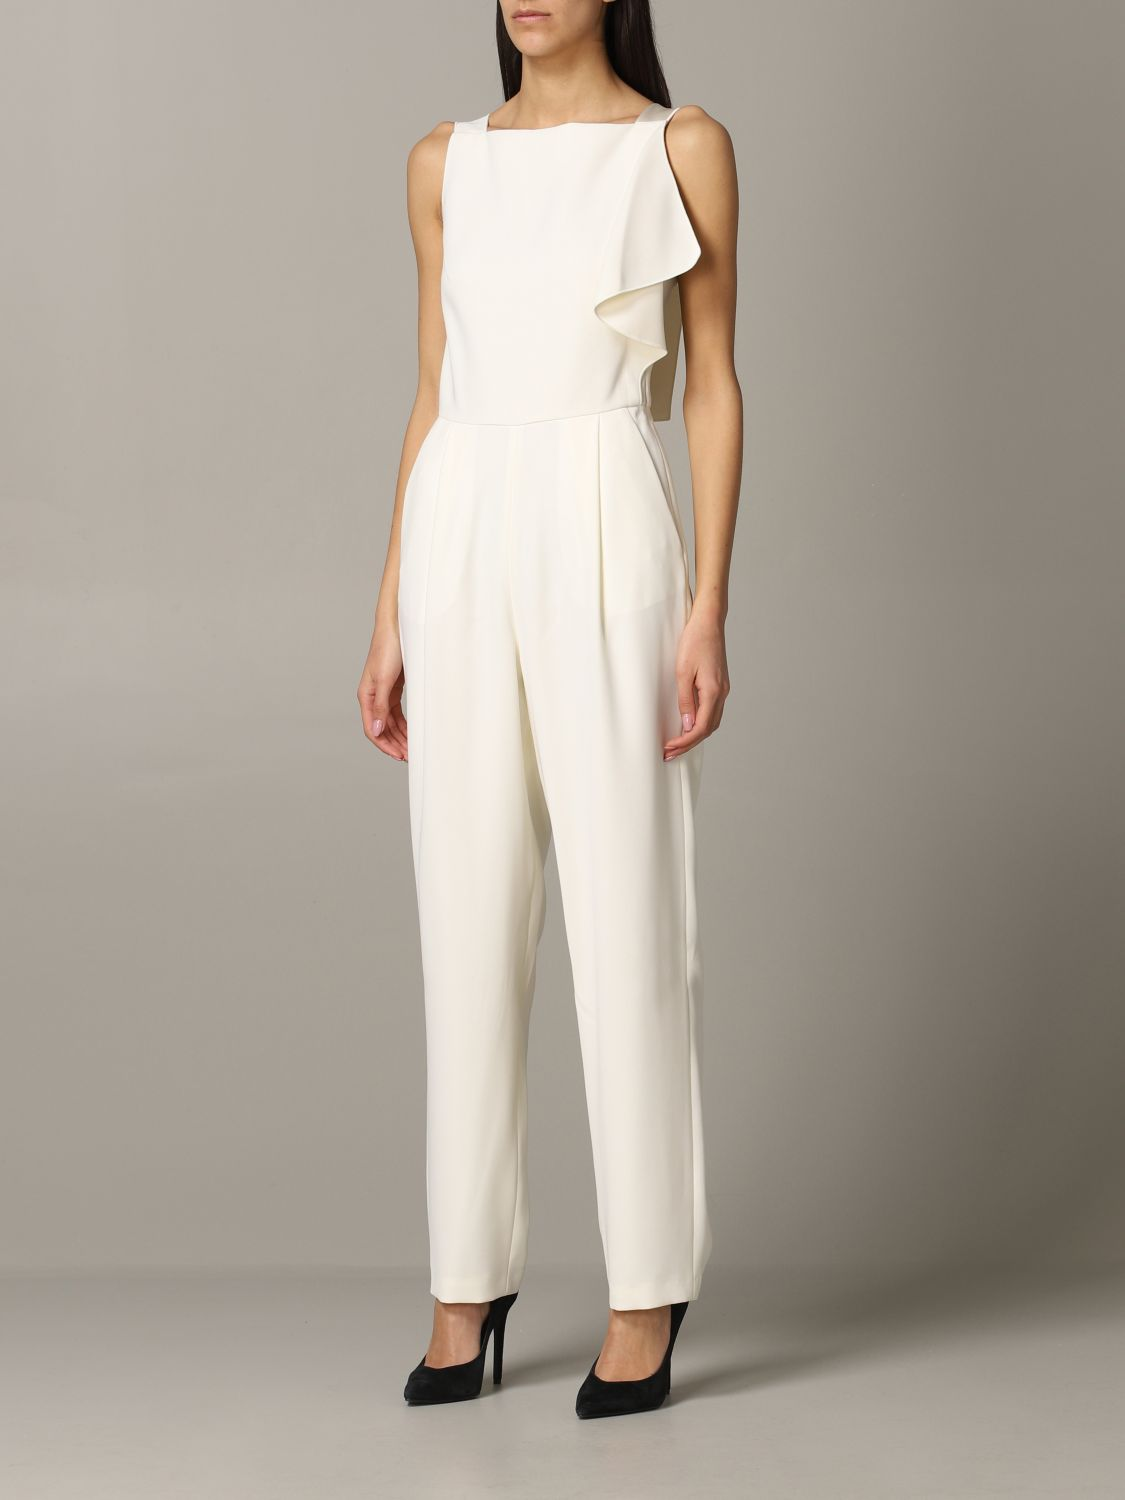 Emporio Armani suit in cady and satin white 3